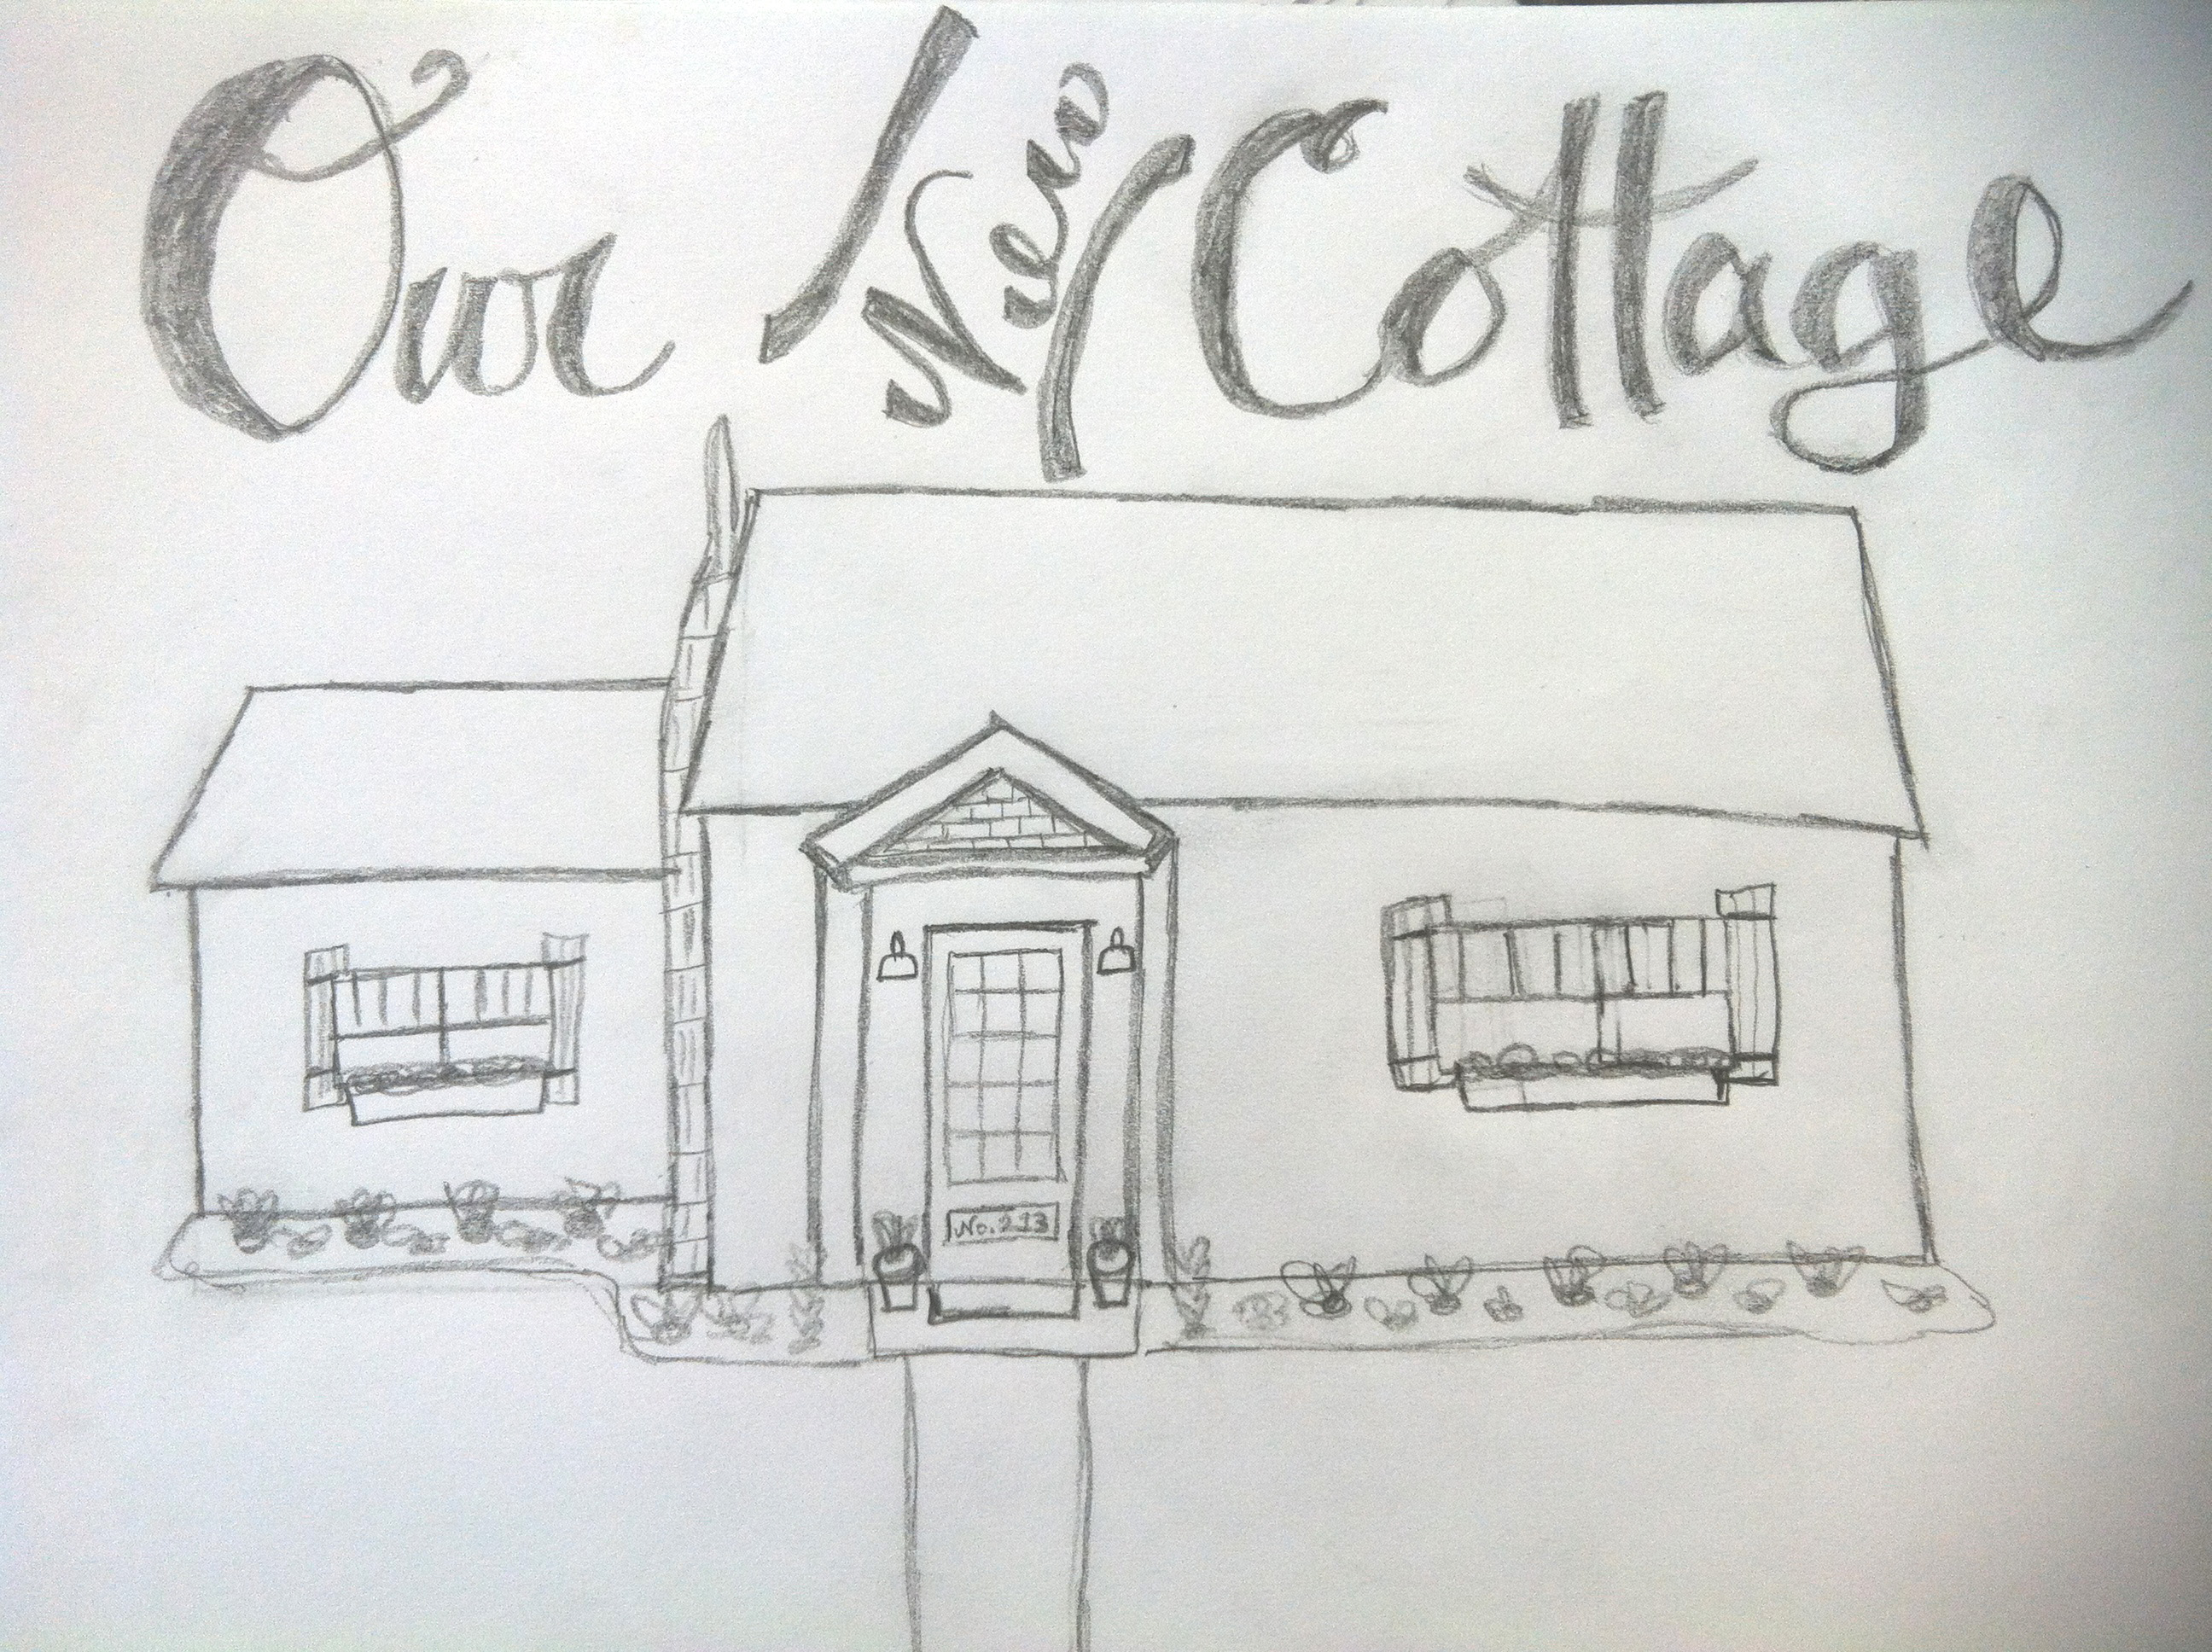 Our New Cottage Sketch